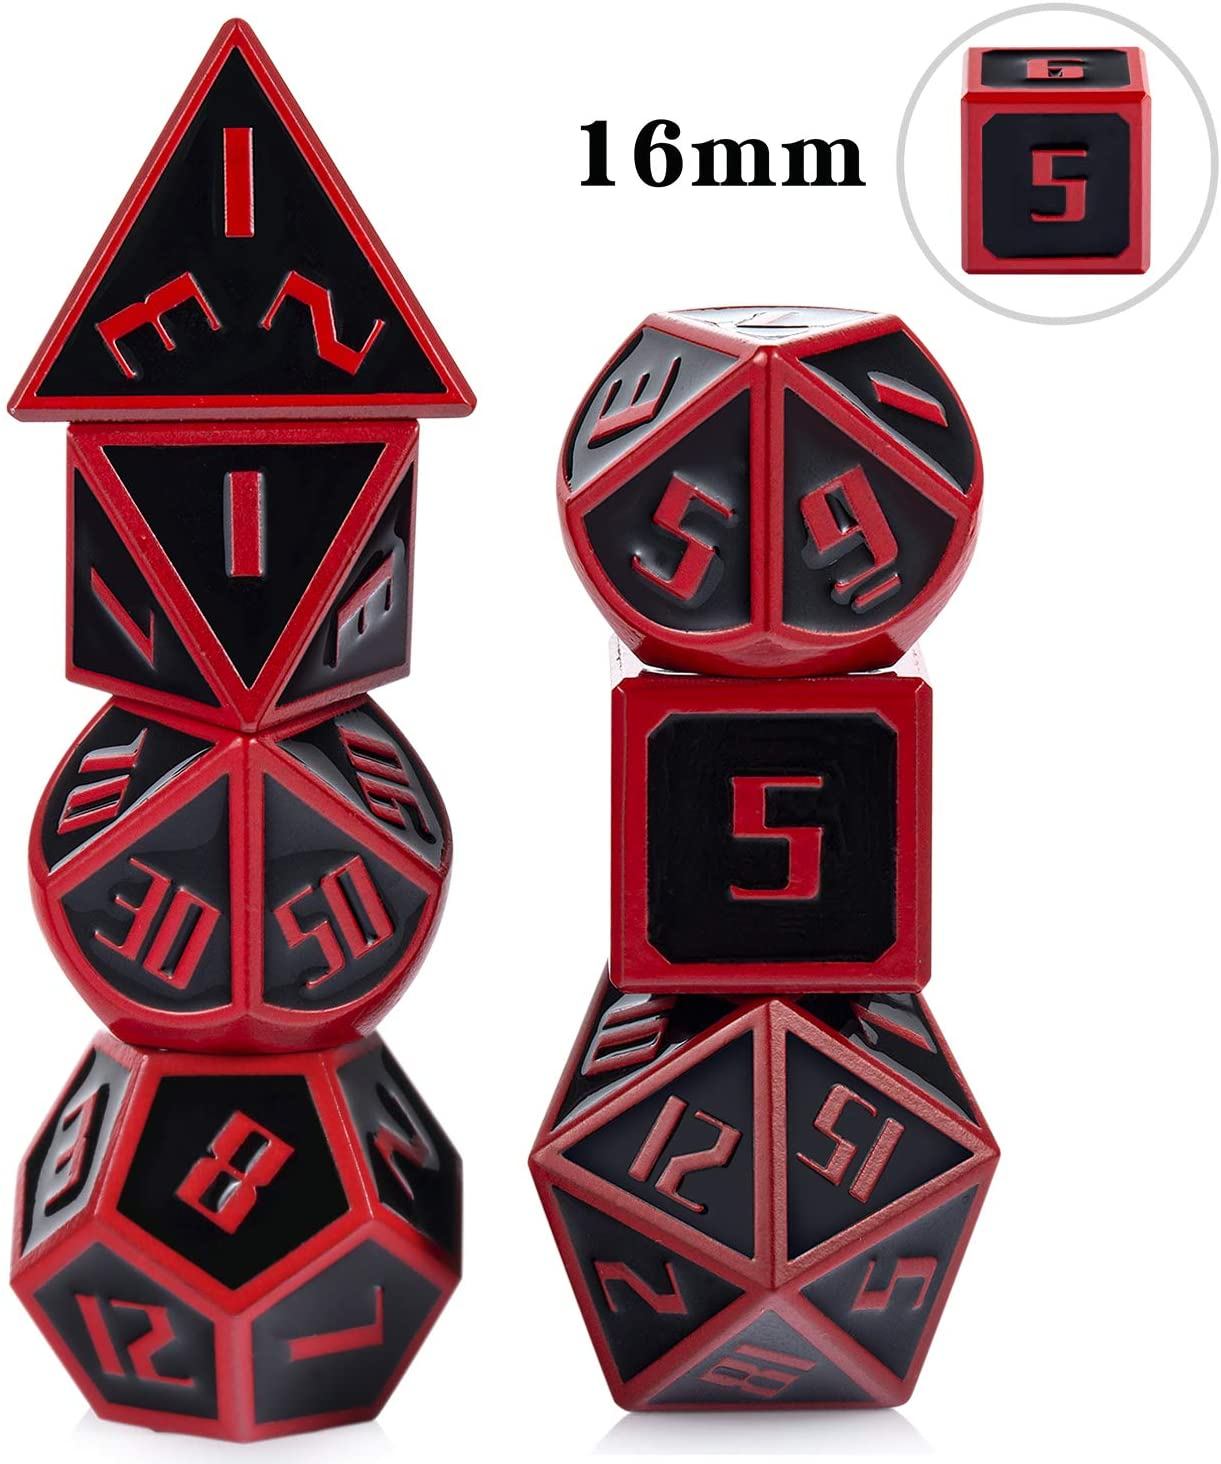 16mm DND Metal Dice Set Black&Red Polyhedral D&D Dice with Metal Case and Velvet Bag for Playing Tabletop Roleplay Games Dungeons and Dragons by ALLCOLORED